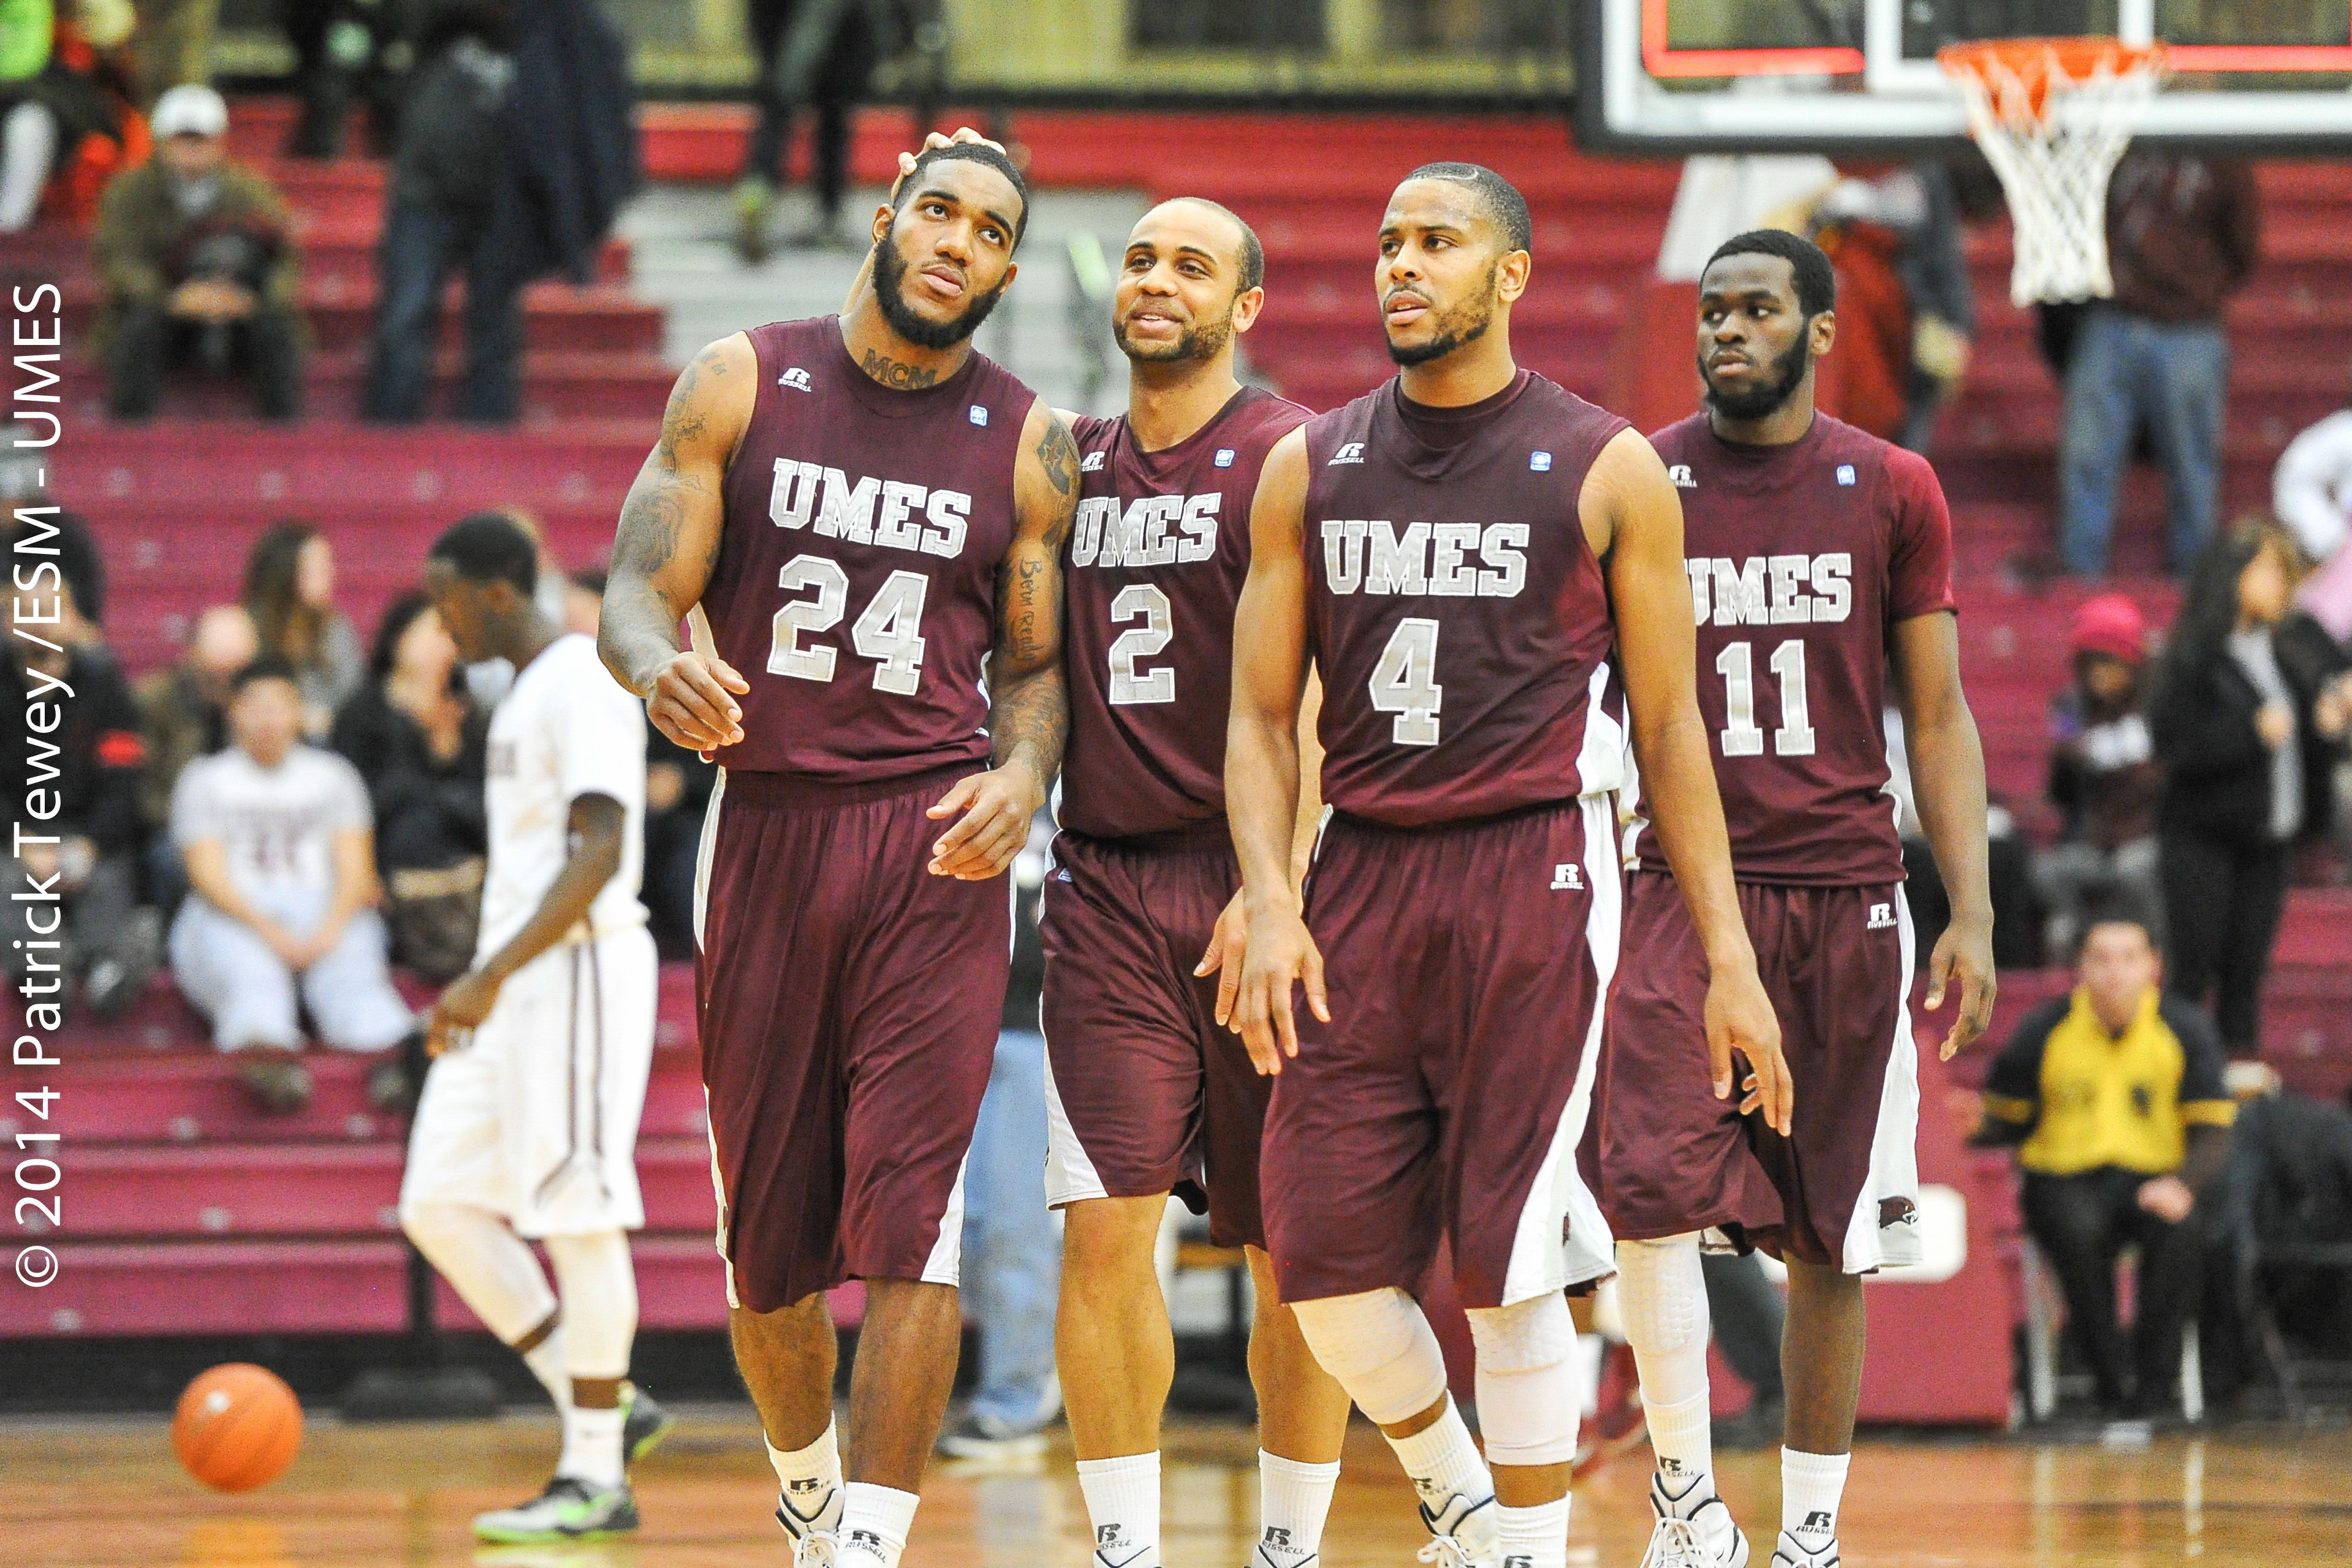 The UMES Basketball team is part of The MidEastern